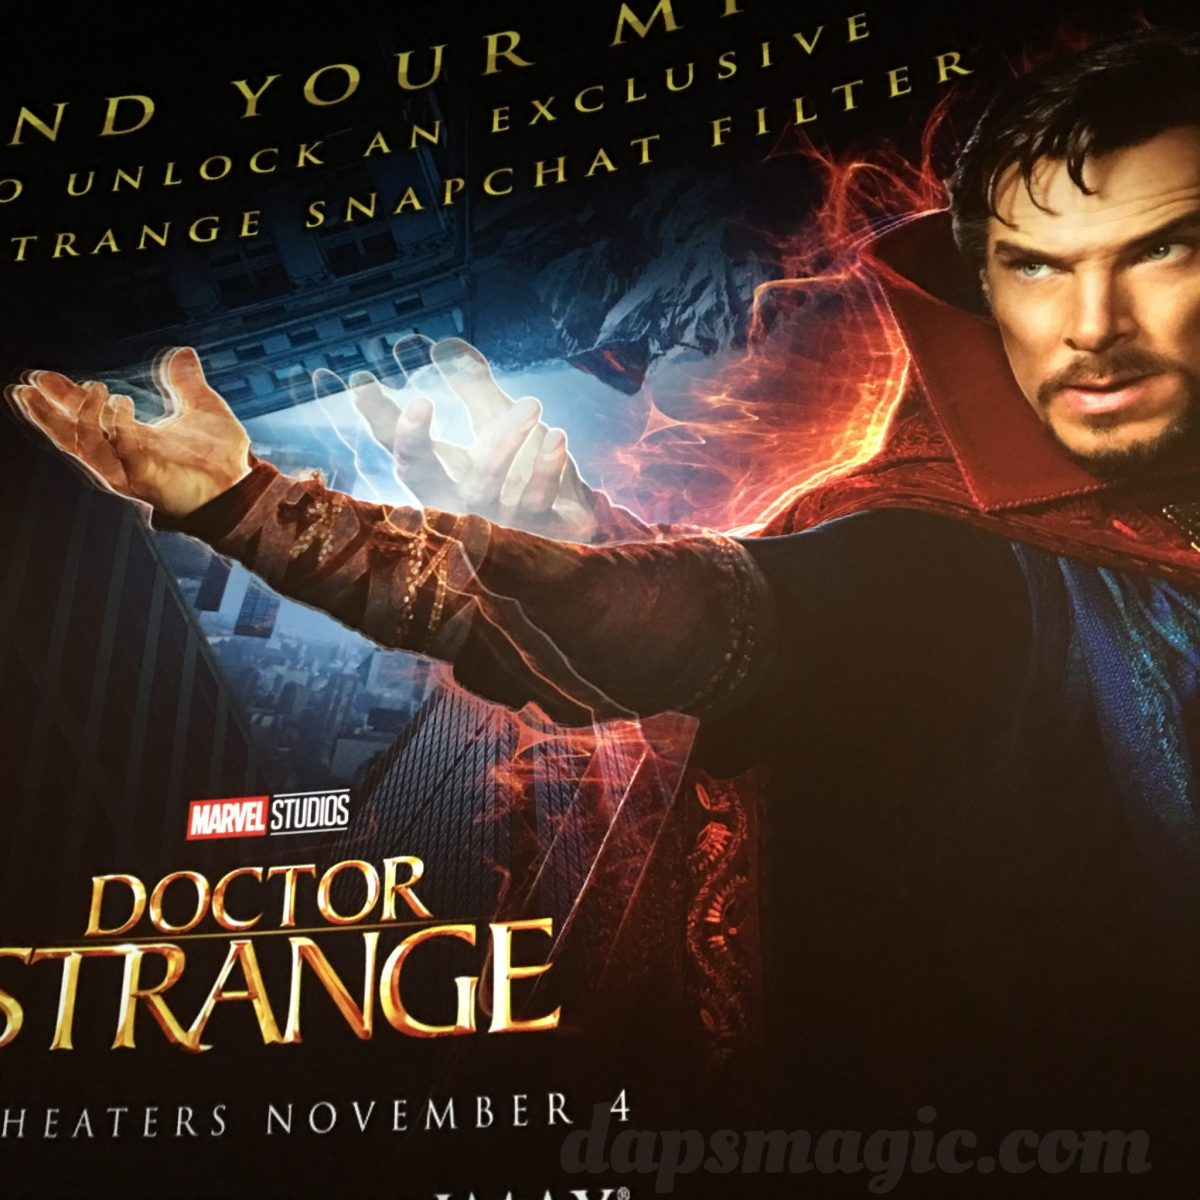 Why IMAX 3D Will Be The Way To Watch Doctor Strange